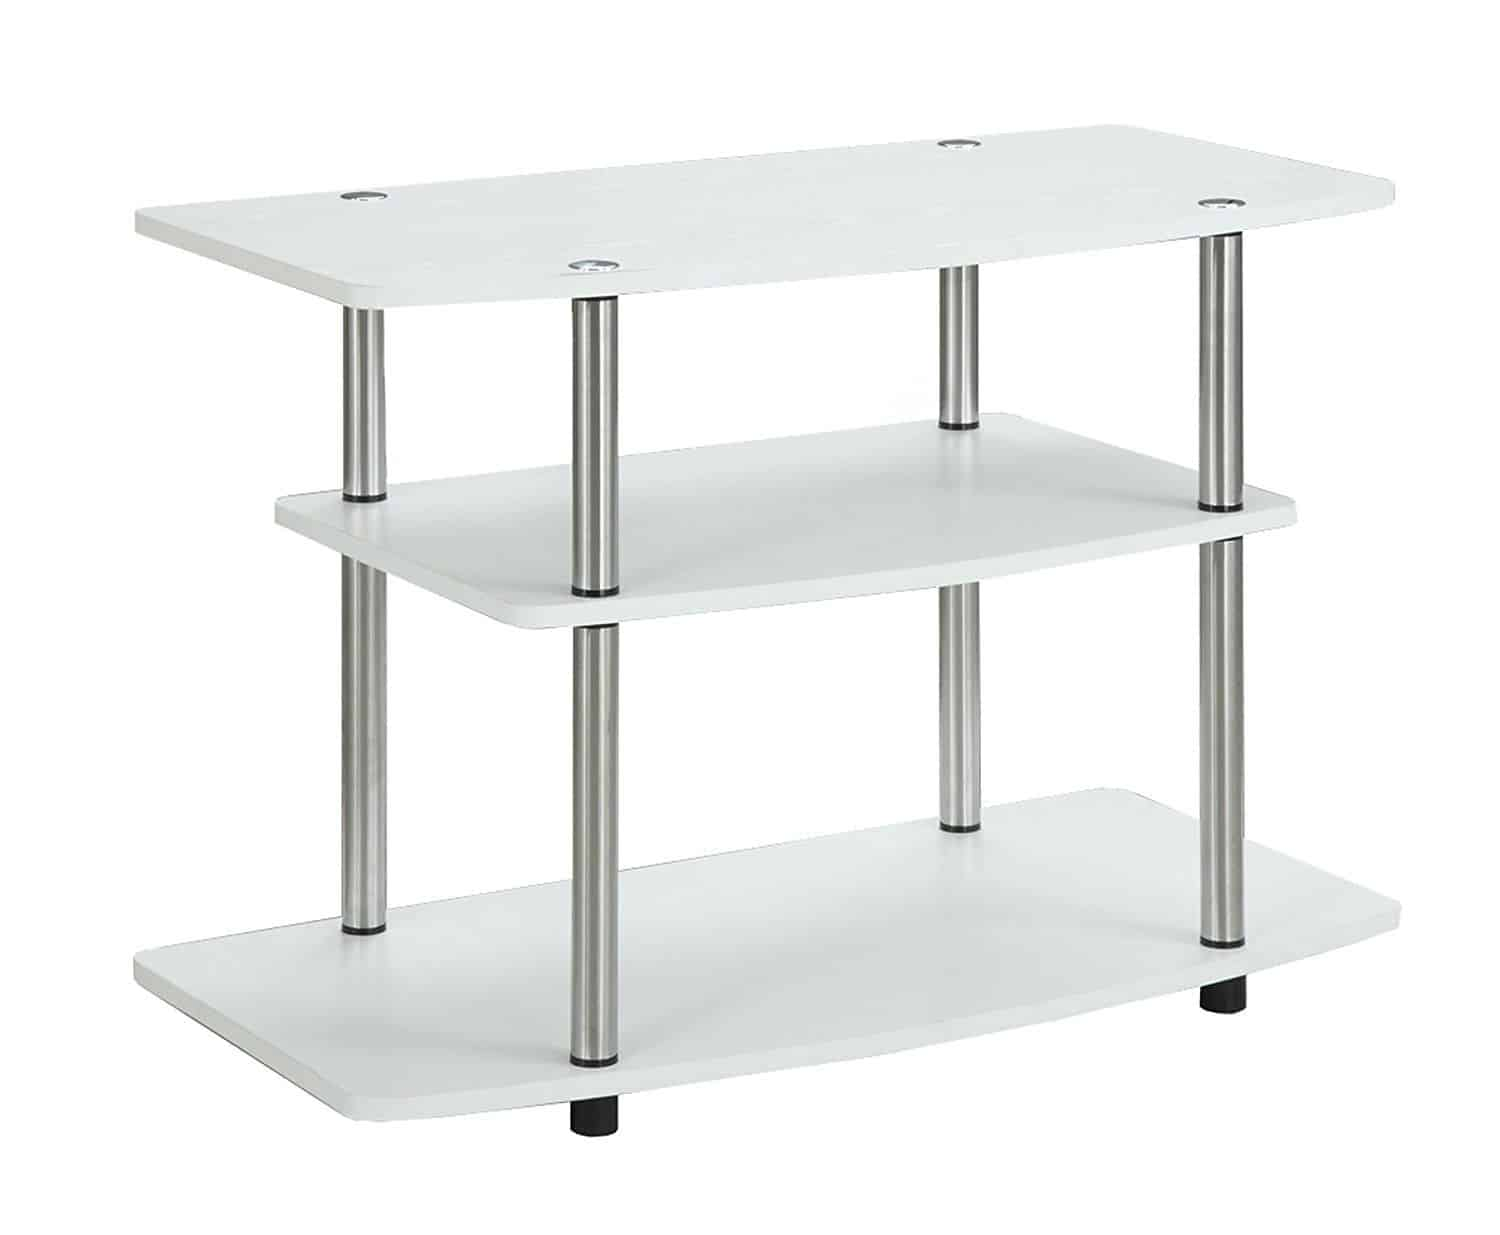 Contemporary TV stand with white wood grain finish and stainless steel clad poles.